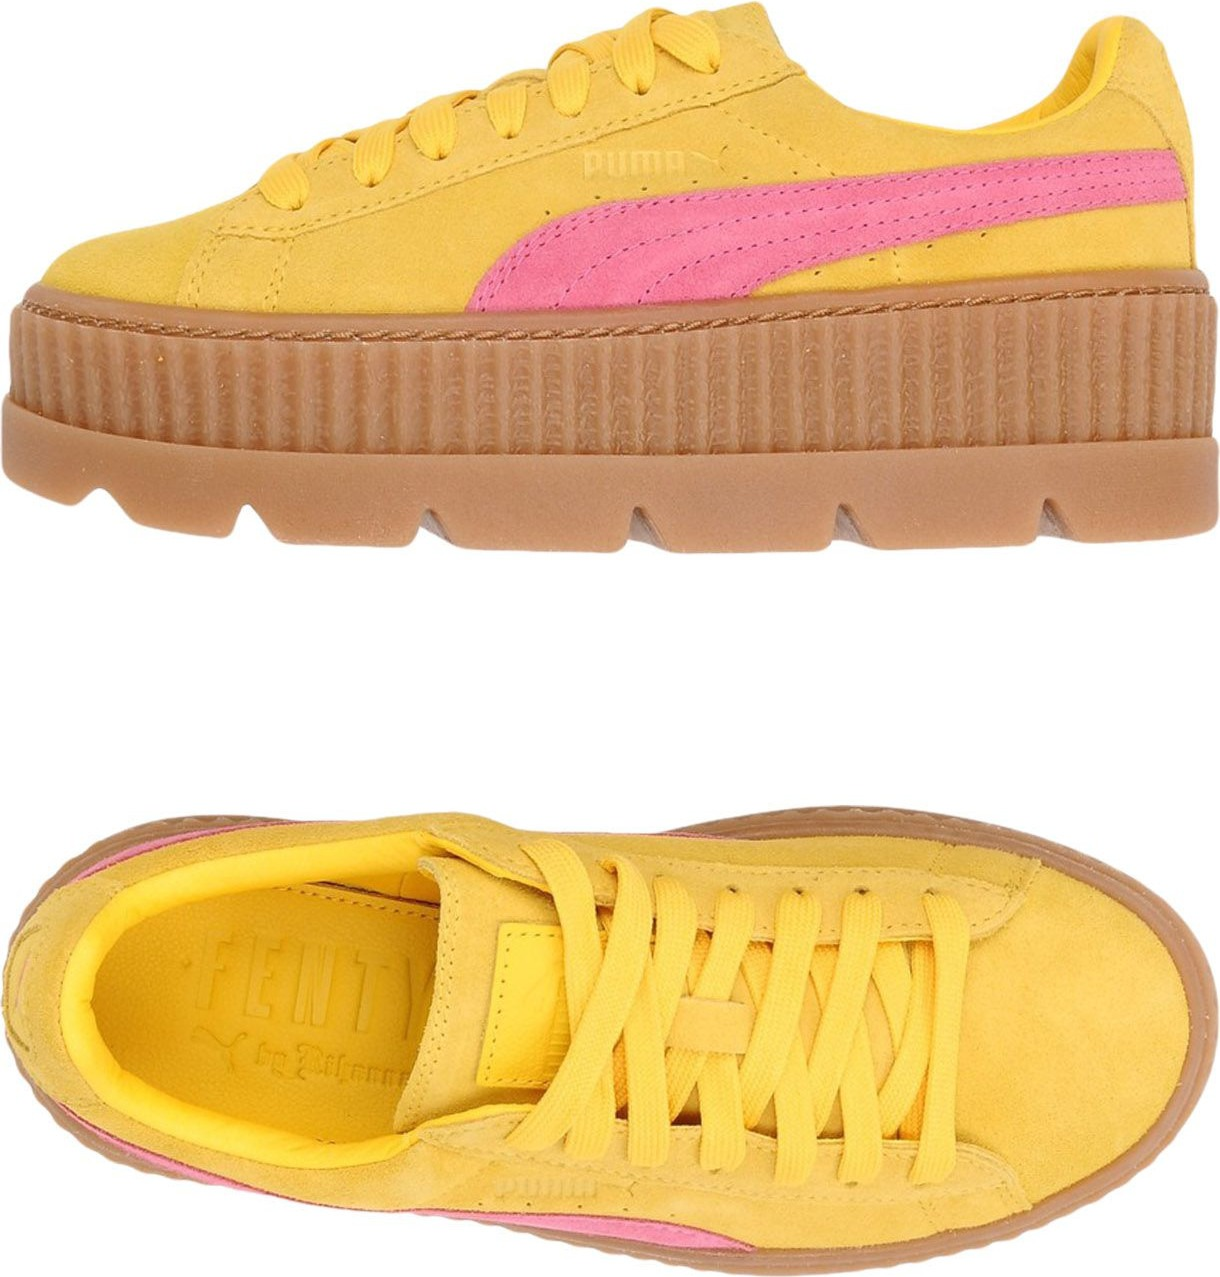 b6274ec178 FENTY PUMA by RIHANNA - CALZATURE - Sneakers & Tennis shoes basse ...